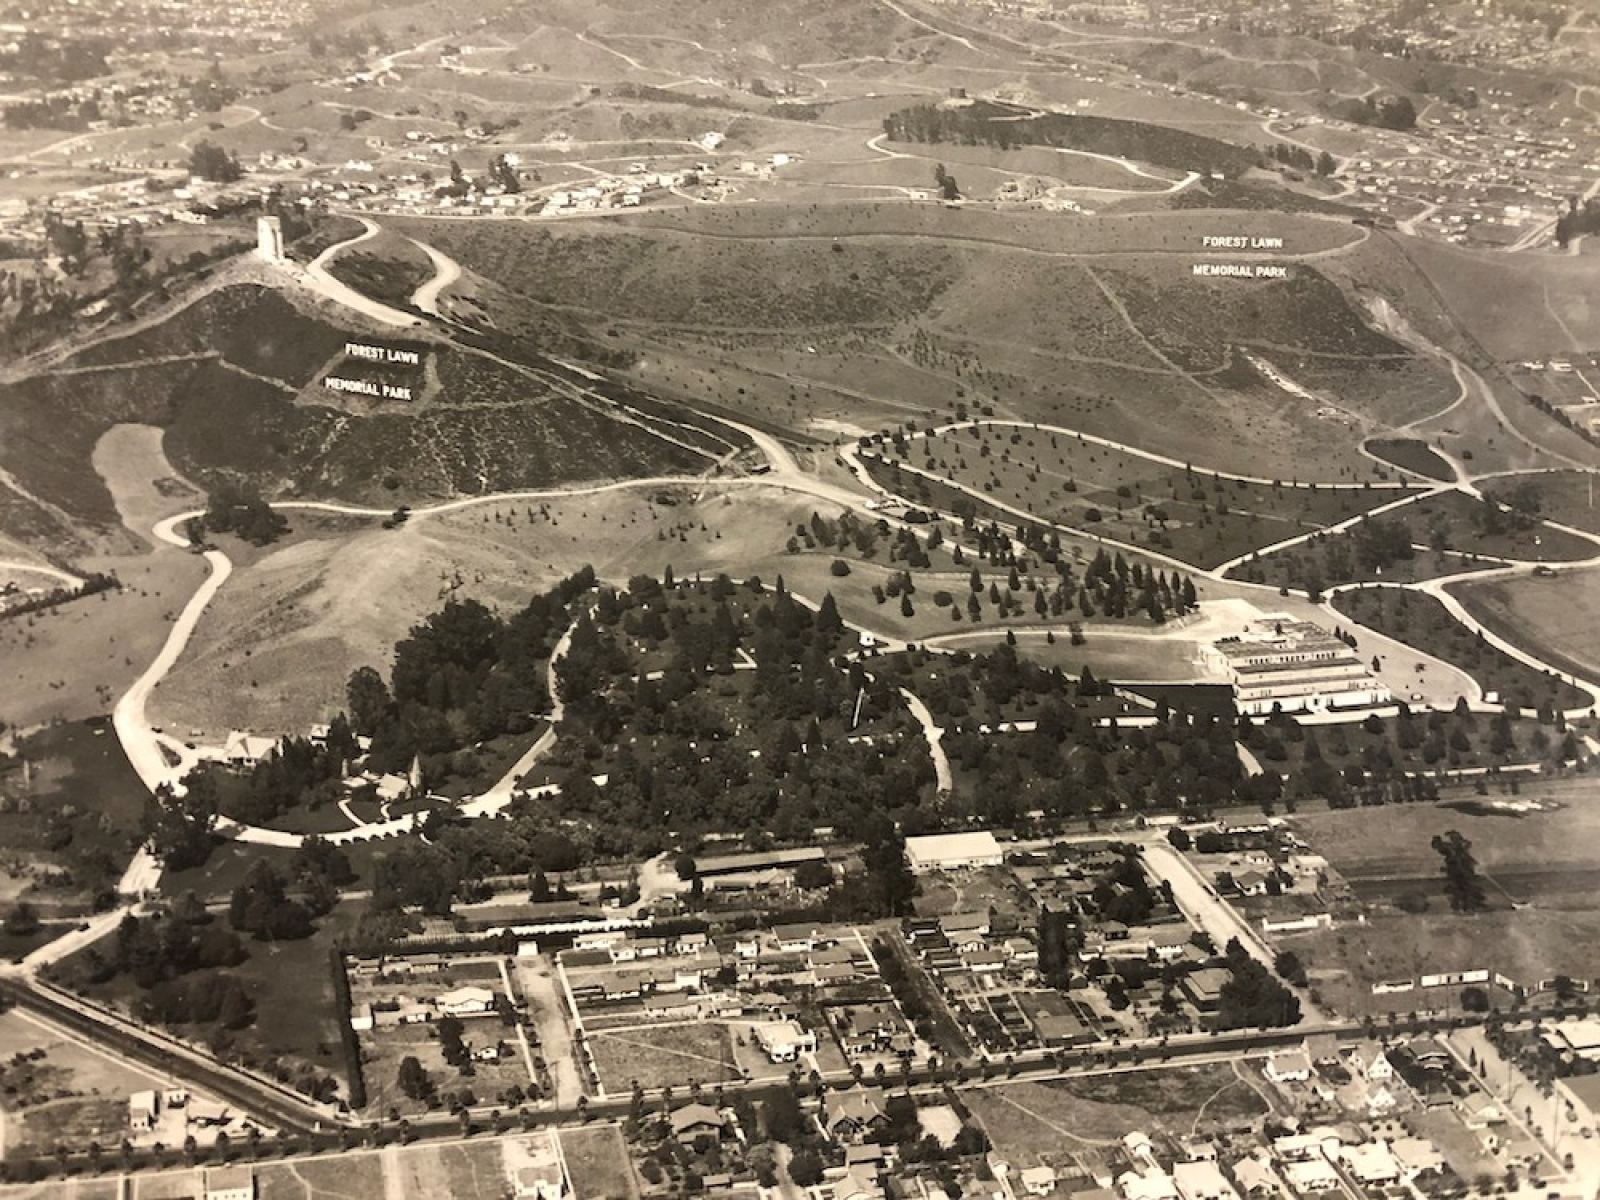 Spence Airplane Photos, Forest Lawn Memorial Park, 1925 (taken on July 16, 1925). Photograph, 16 x 20 inches. Forest Lawn Museum Permanent Collection